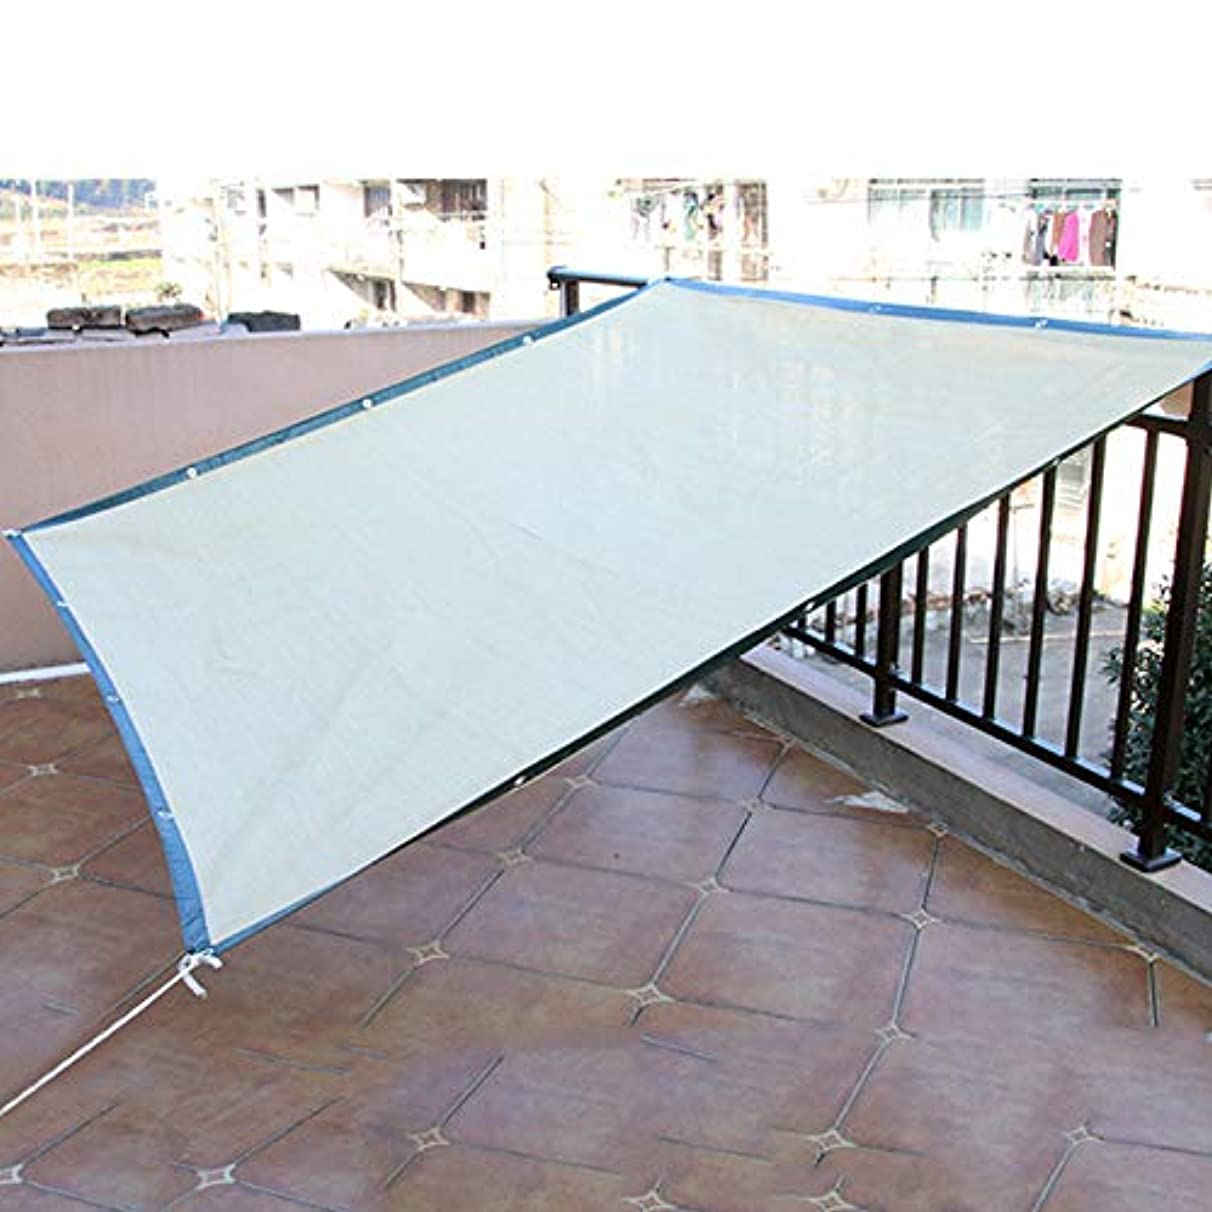 HEEGNPD New Garden Shade Sails Lawn Sun Protection Net Cloth Cover Canopy Garden Patio Pool Shade Sail Awning Picnic Tent Camping Home